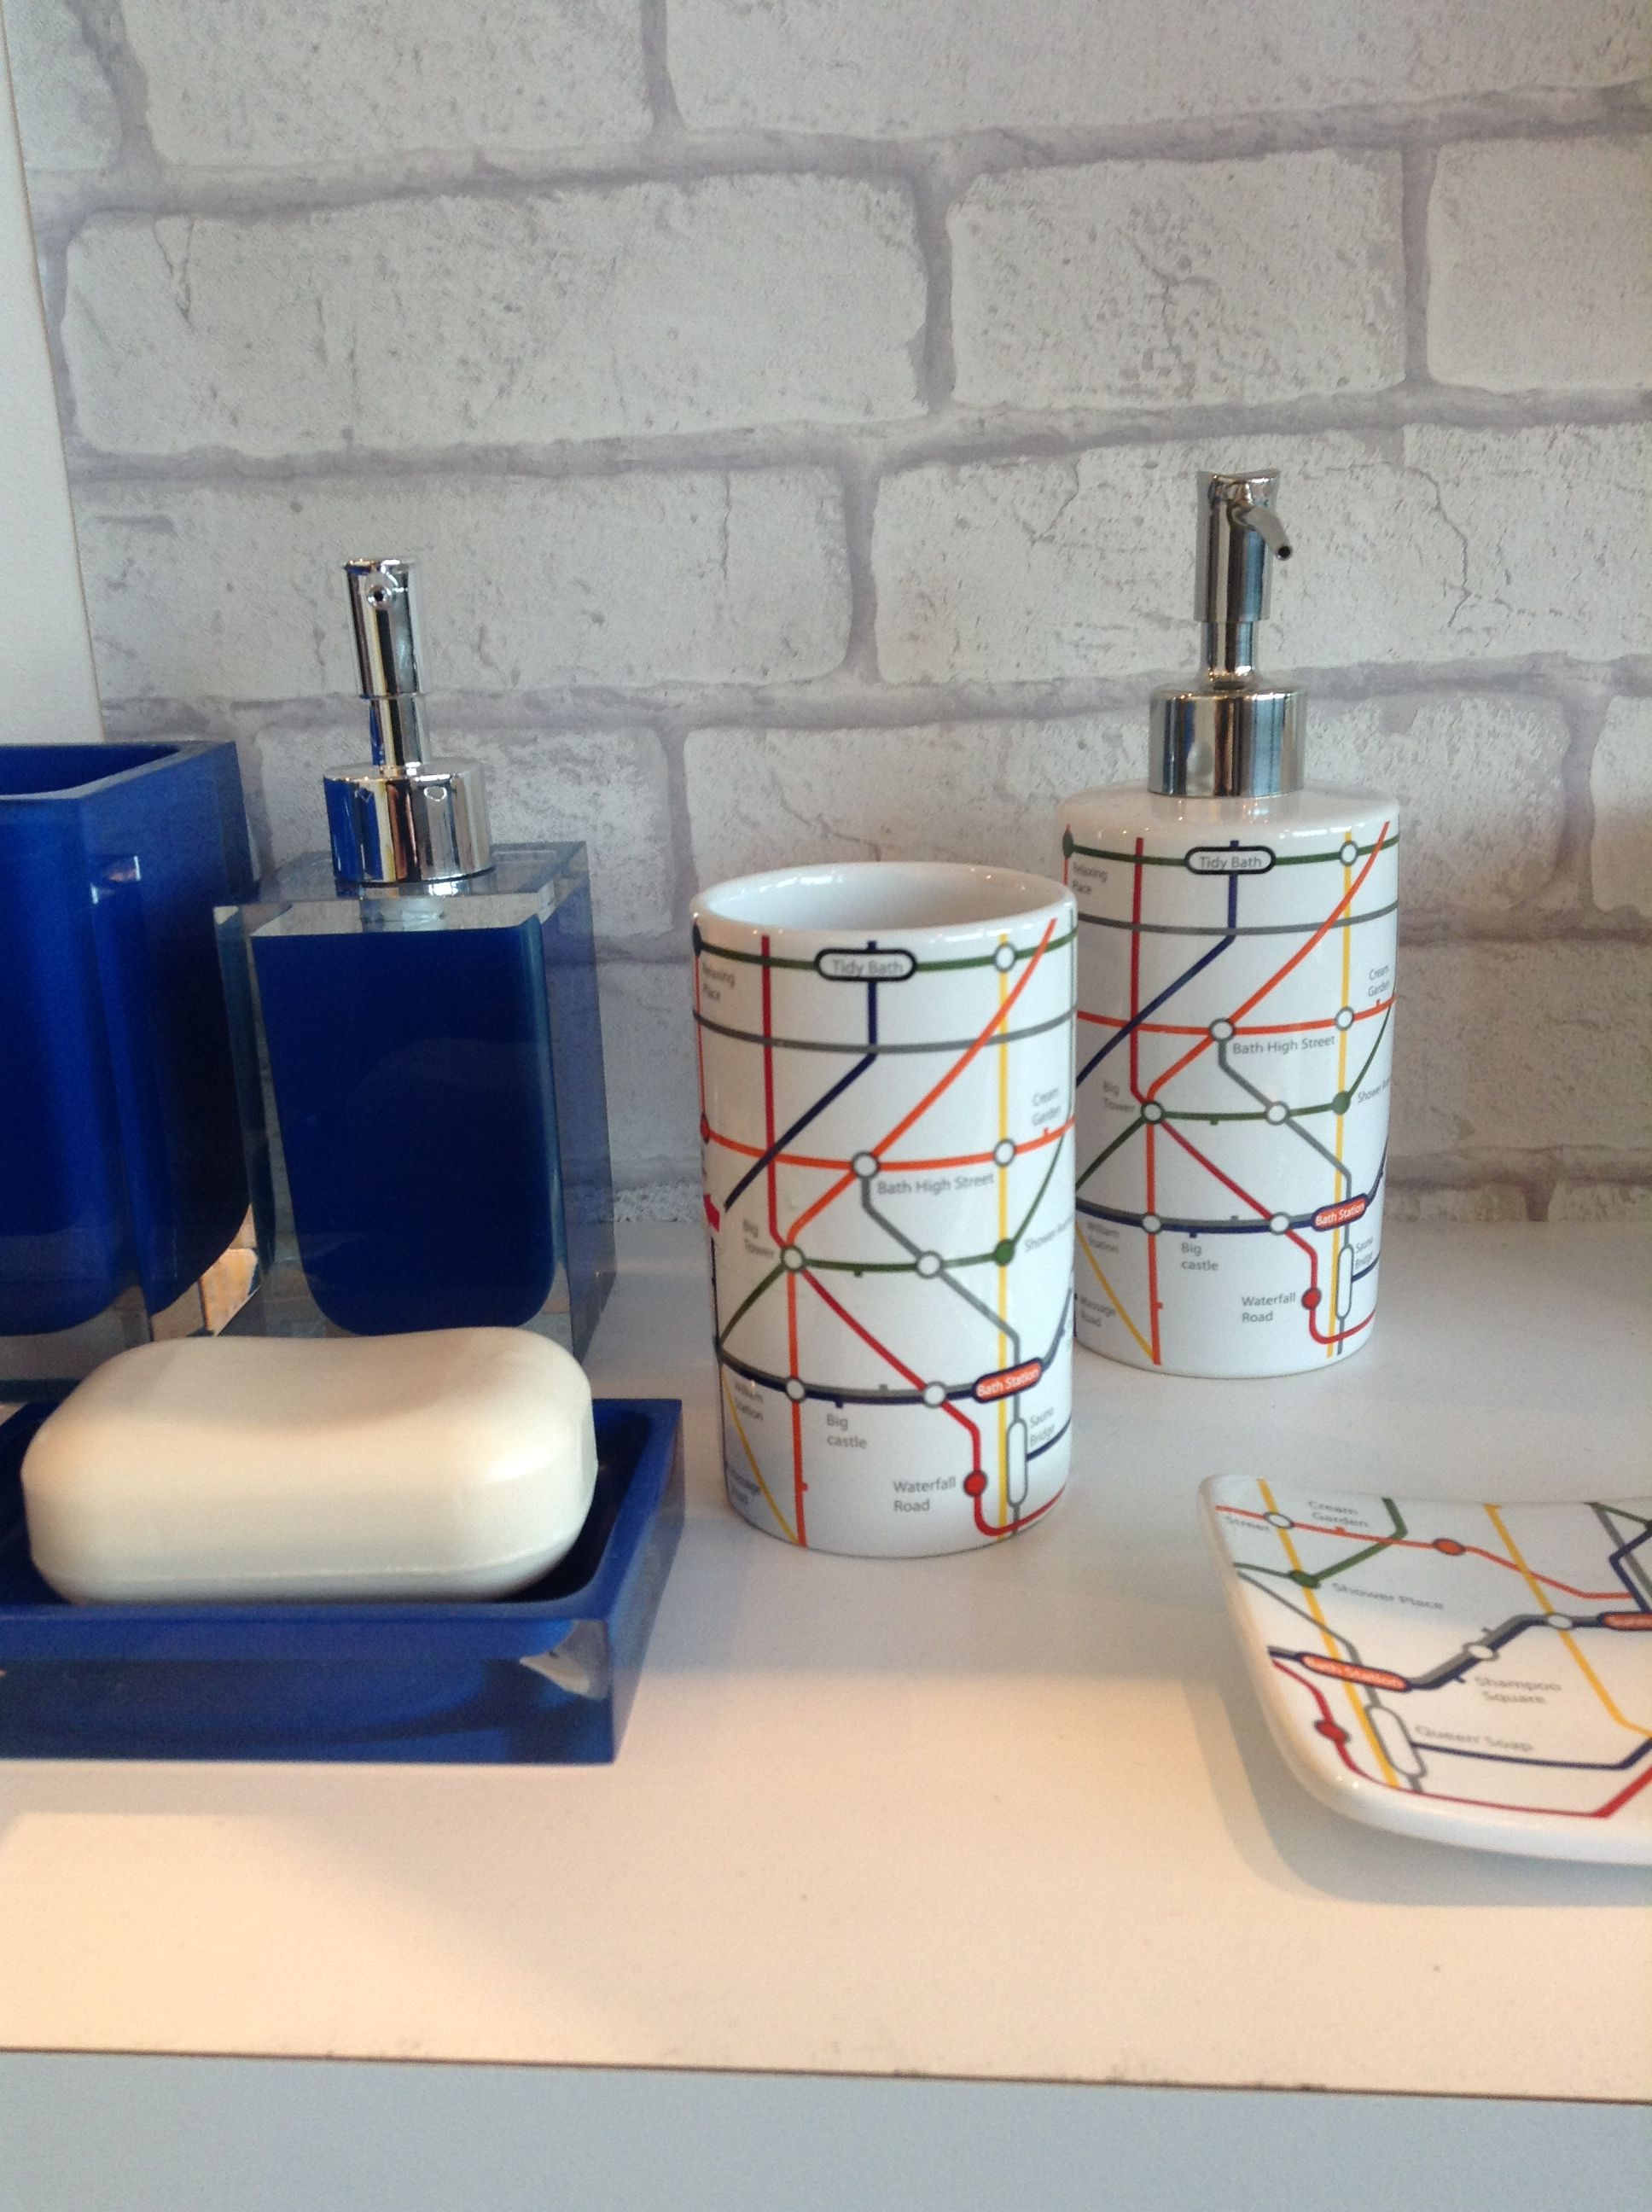 stylish gloss blue and london tube inspired bathroom accessories bathroom - Bathroom Accessories London